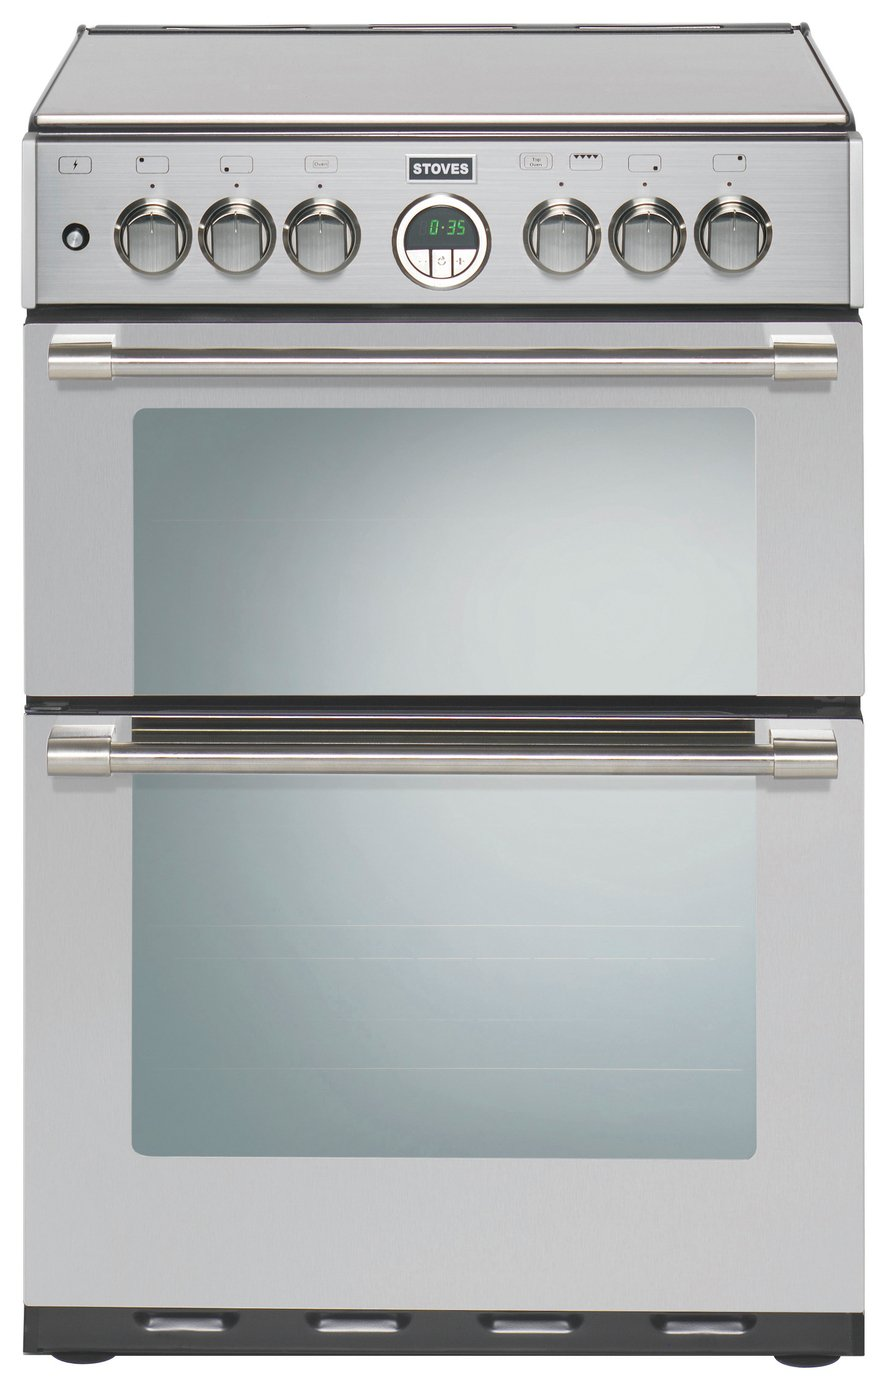 Buy Stoves Sterling 600g 60cm Double Oven Gas Cooker S Steel Freestanding Cookers Argos